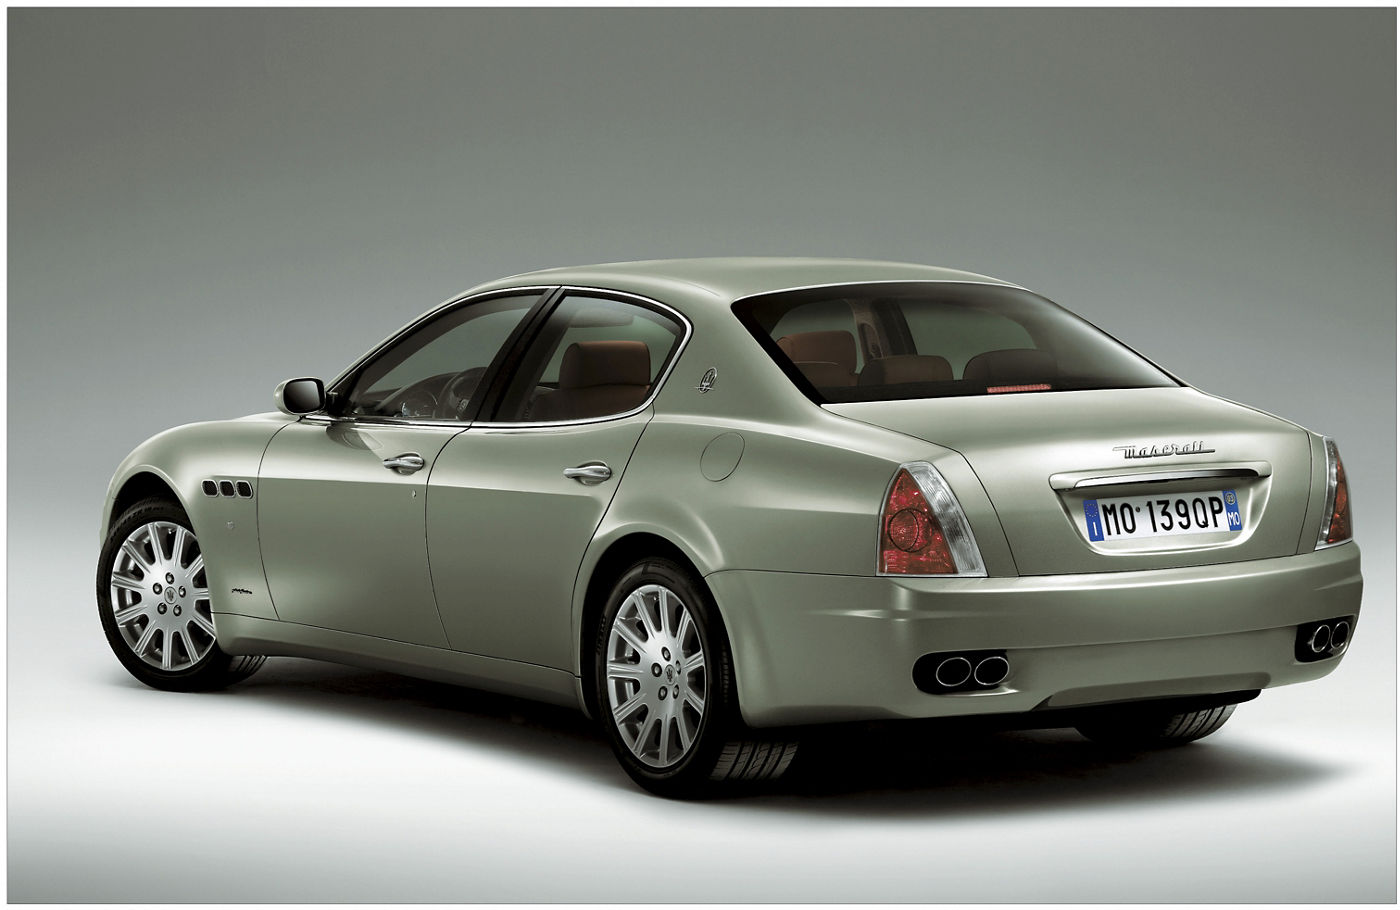 2003 Maserati Quattroporte V Duoselect - rear view of the 5-seater sedan by Pininfarina